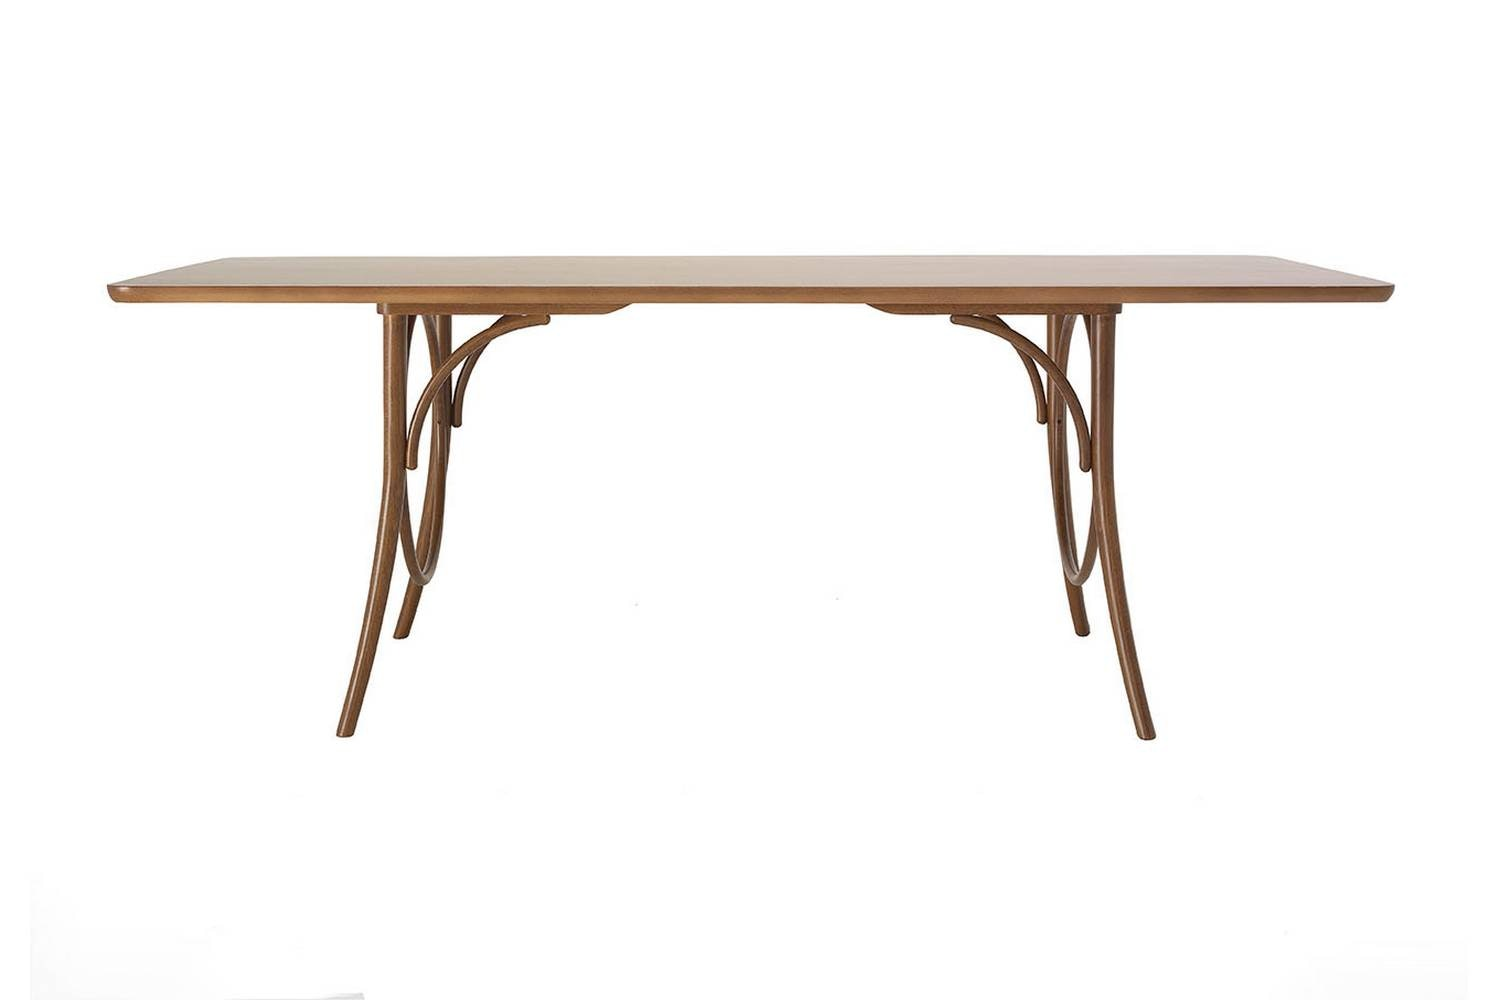 Charmant Ring Dining Table By Gebruder Thonet Vienna For Wiener GTV Design